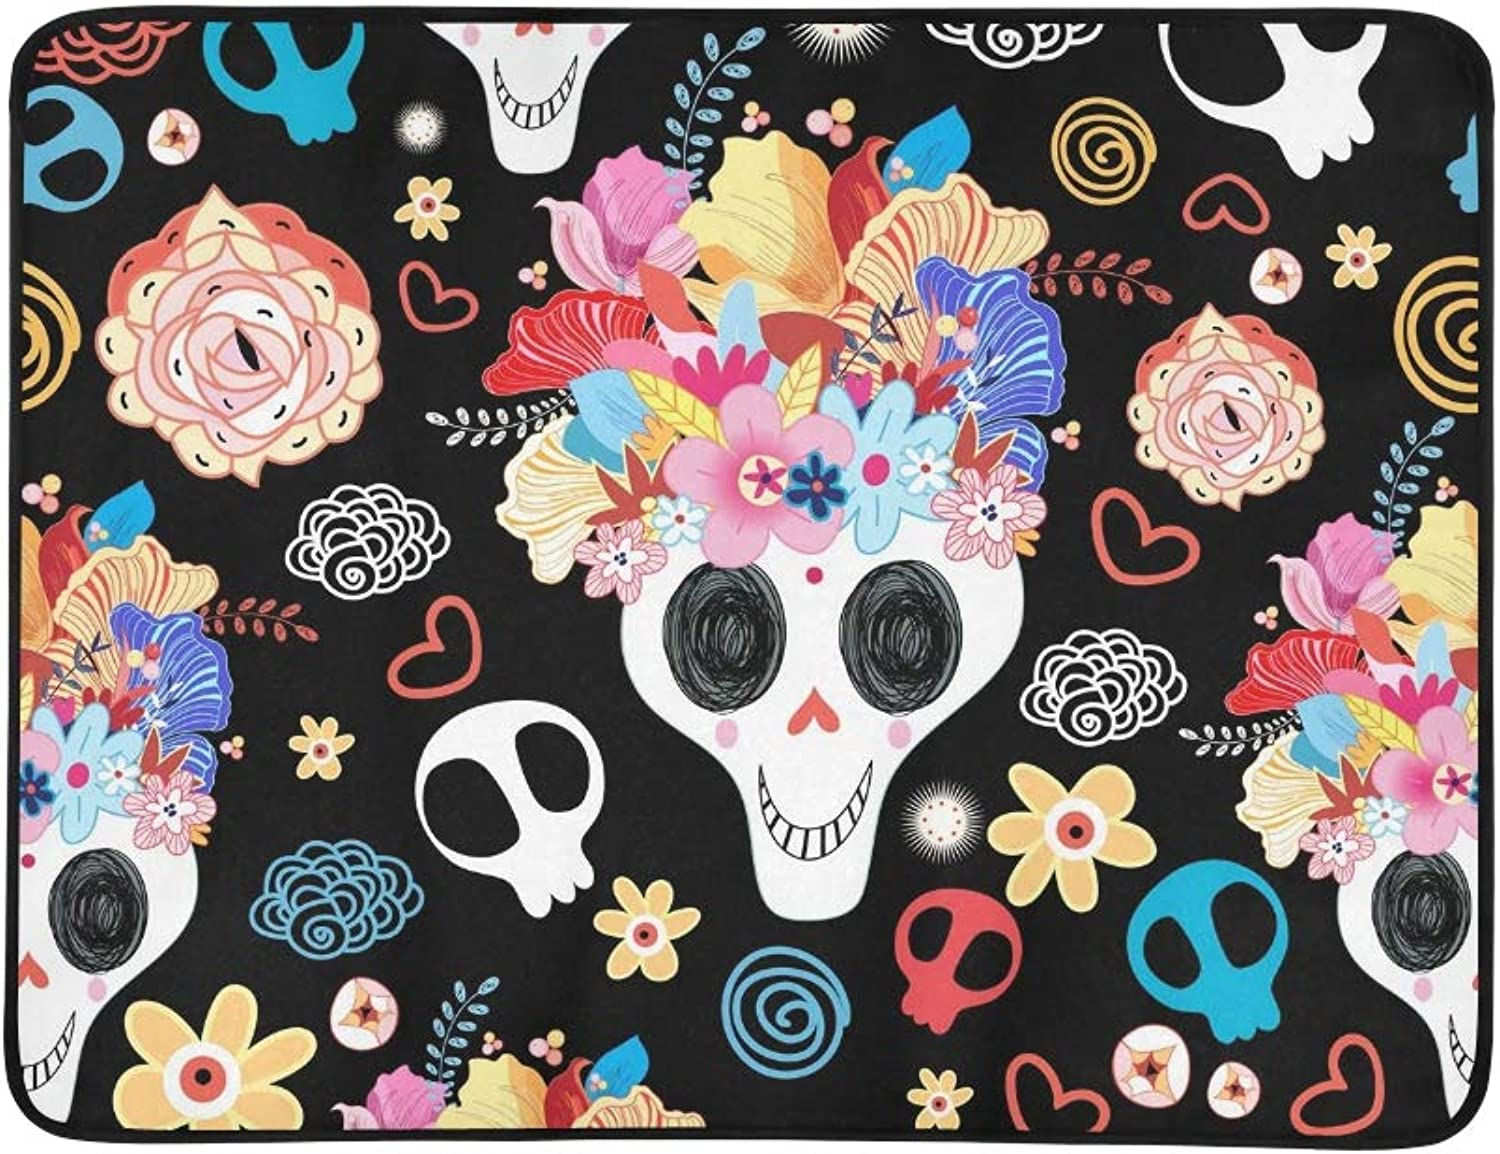 Skulls Beautiful Portable and Foldable Blanket Mat 60x78 Inch Handy Mat for Camping Picnic Beach Indoor Outdoor Travel